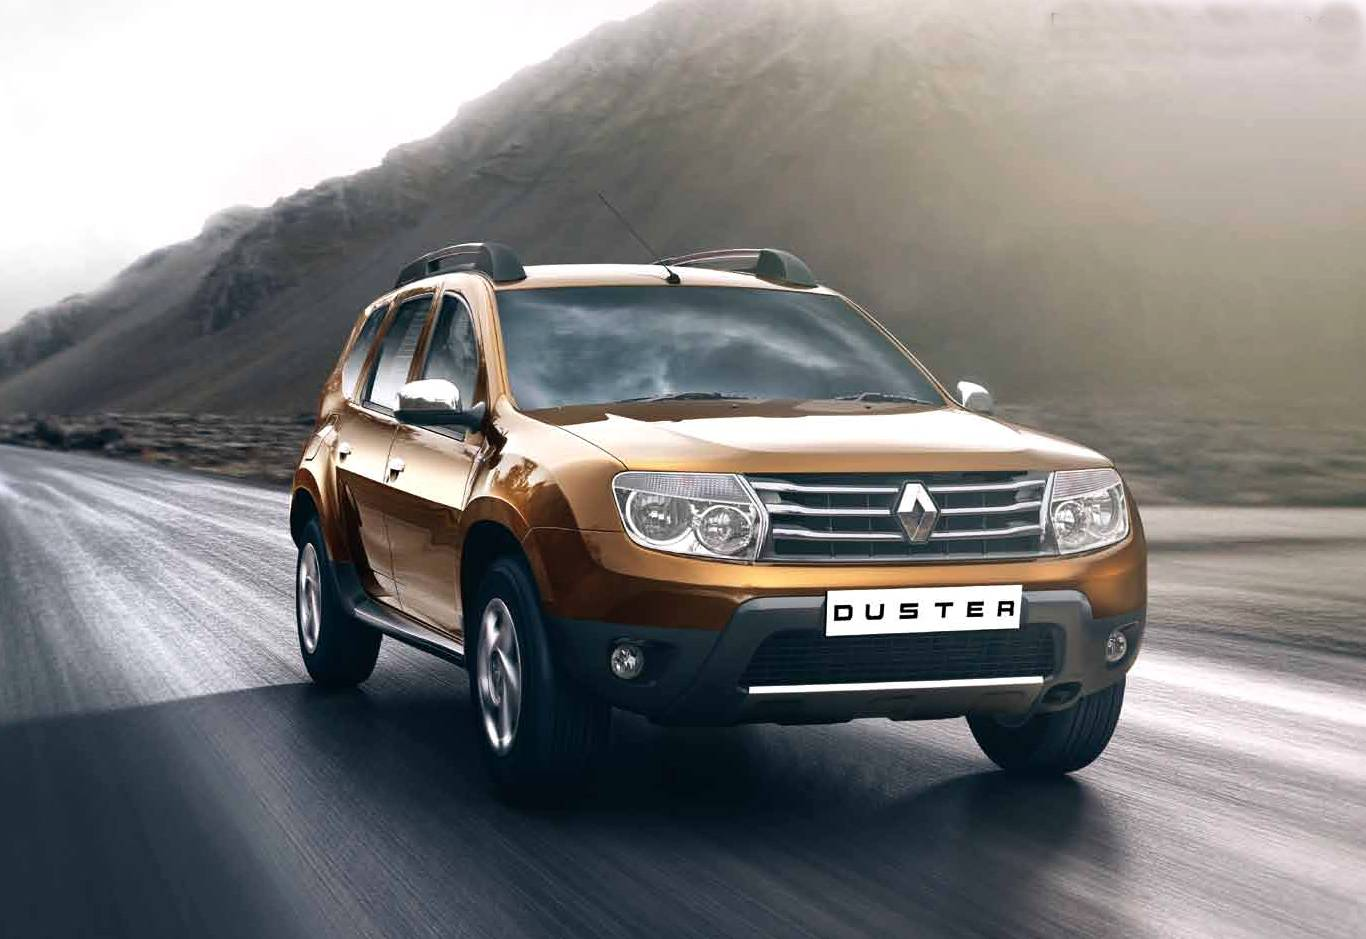 free wallpaper download renault duster wallpaper. Black Bedroom Furniture Sets. Home Design Ideas